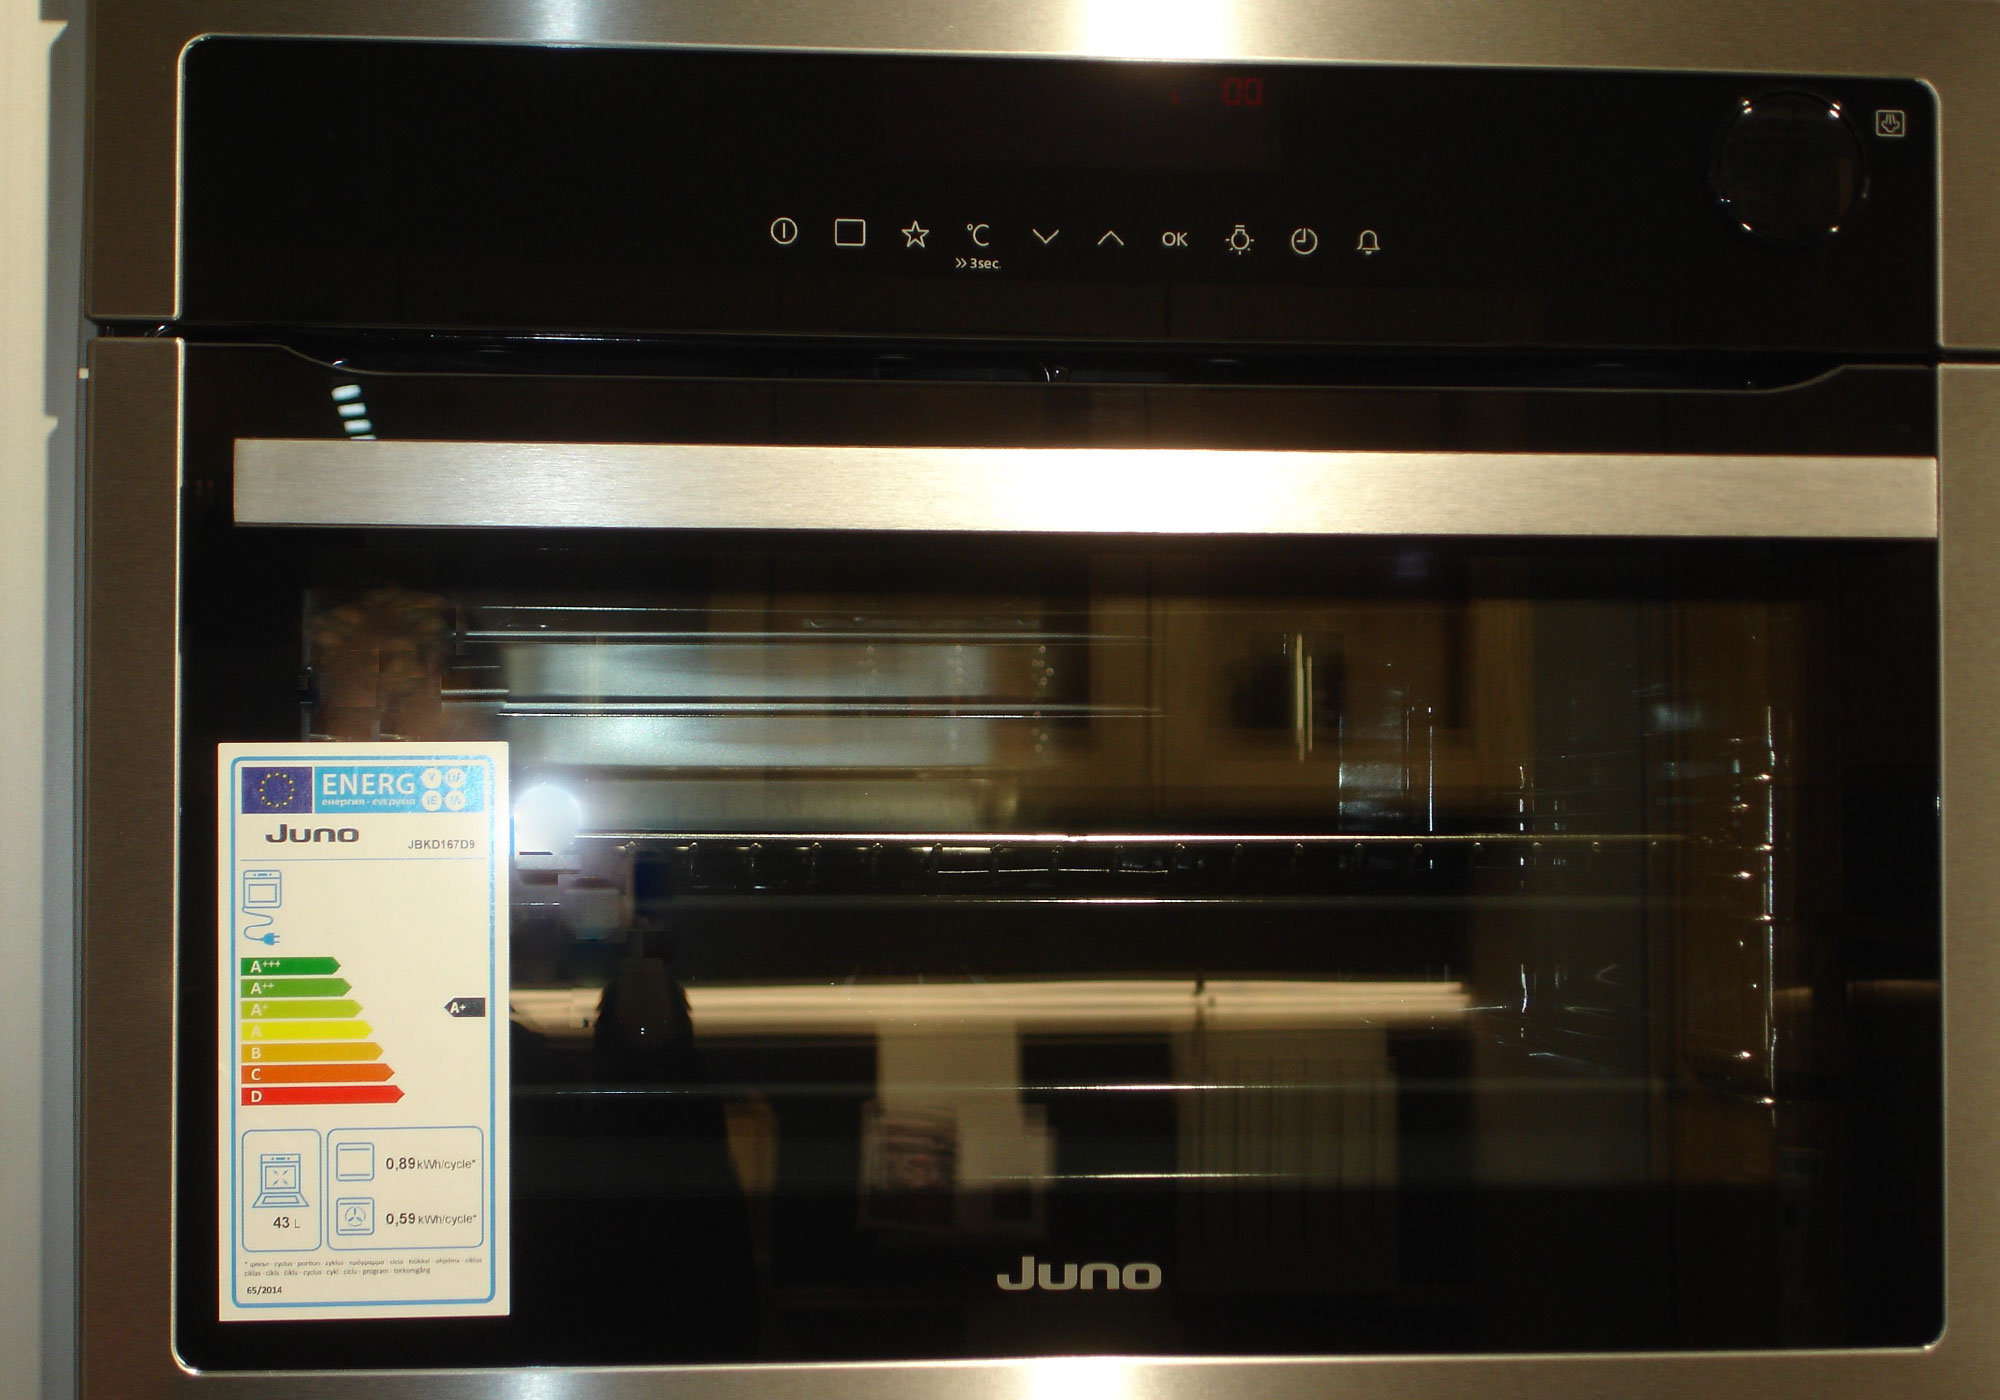 <p>Dampfbackofen: Juno Selection</p>